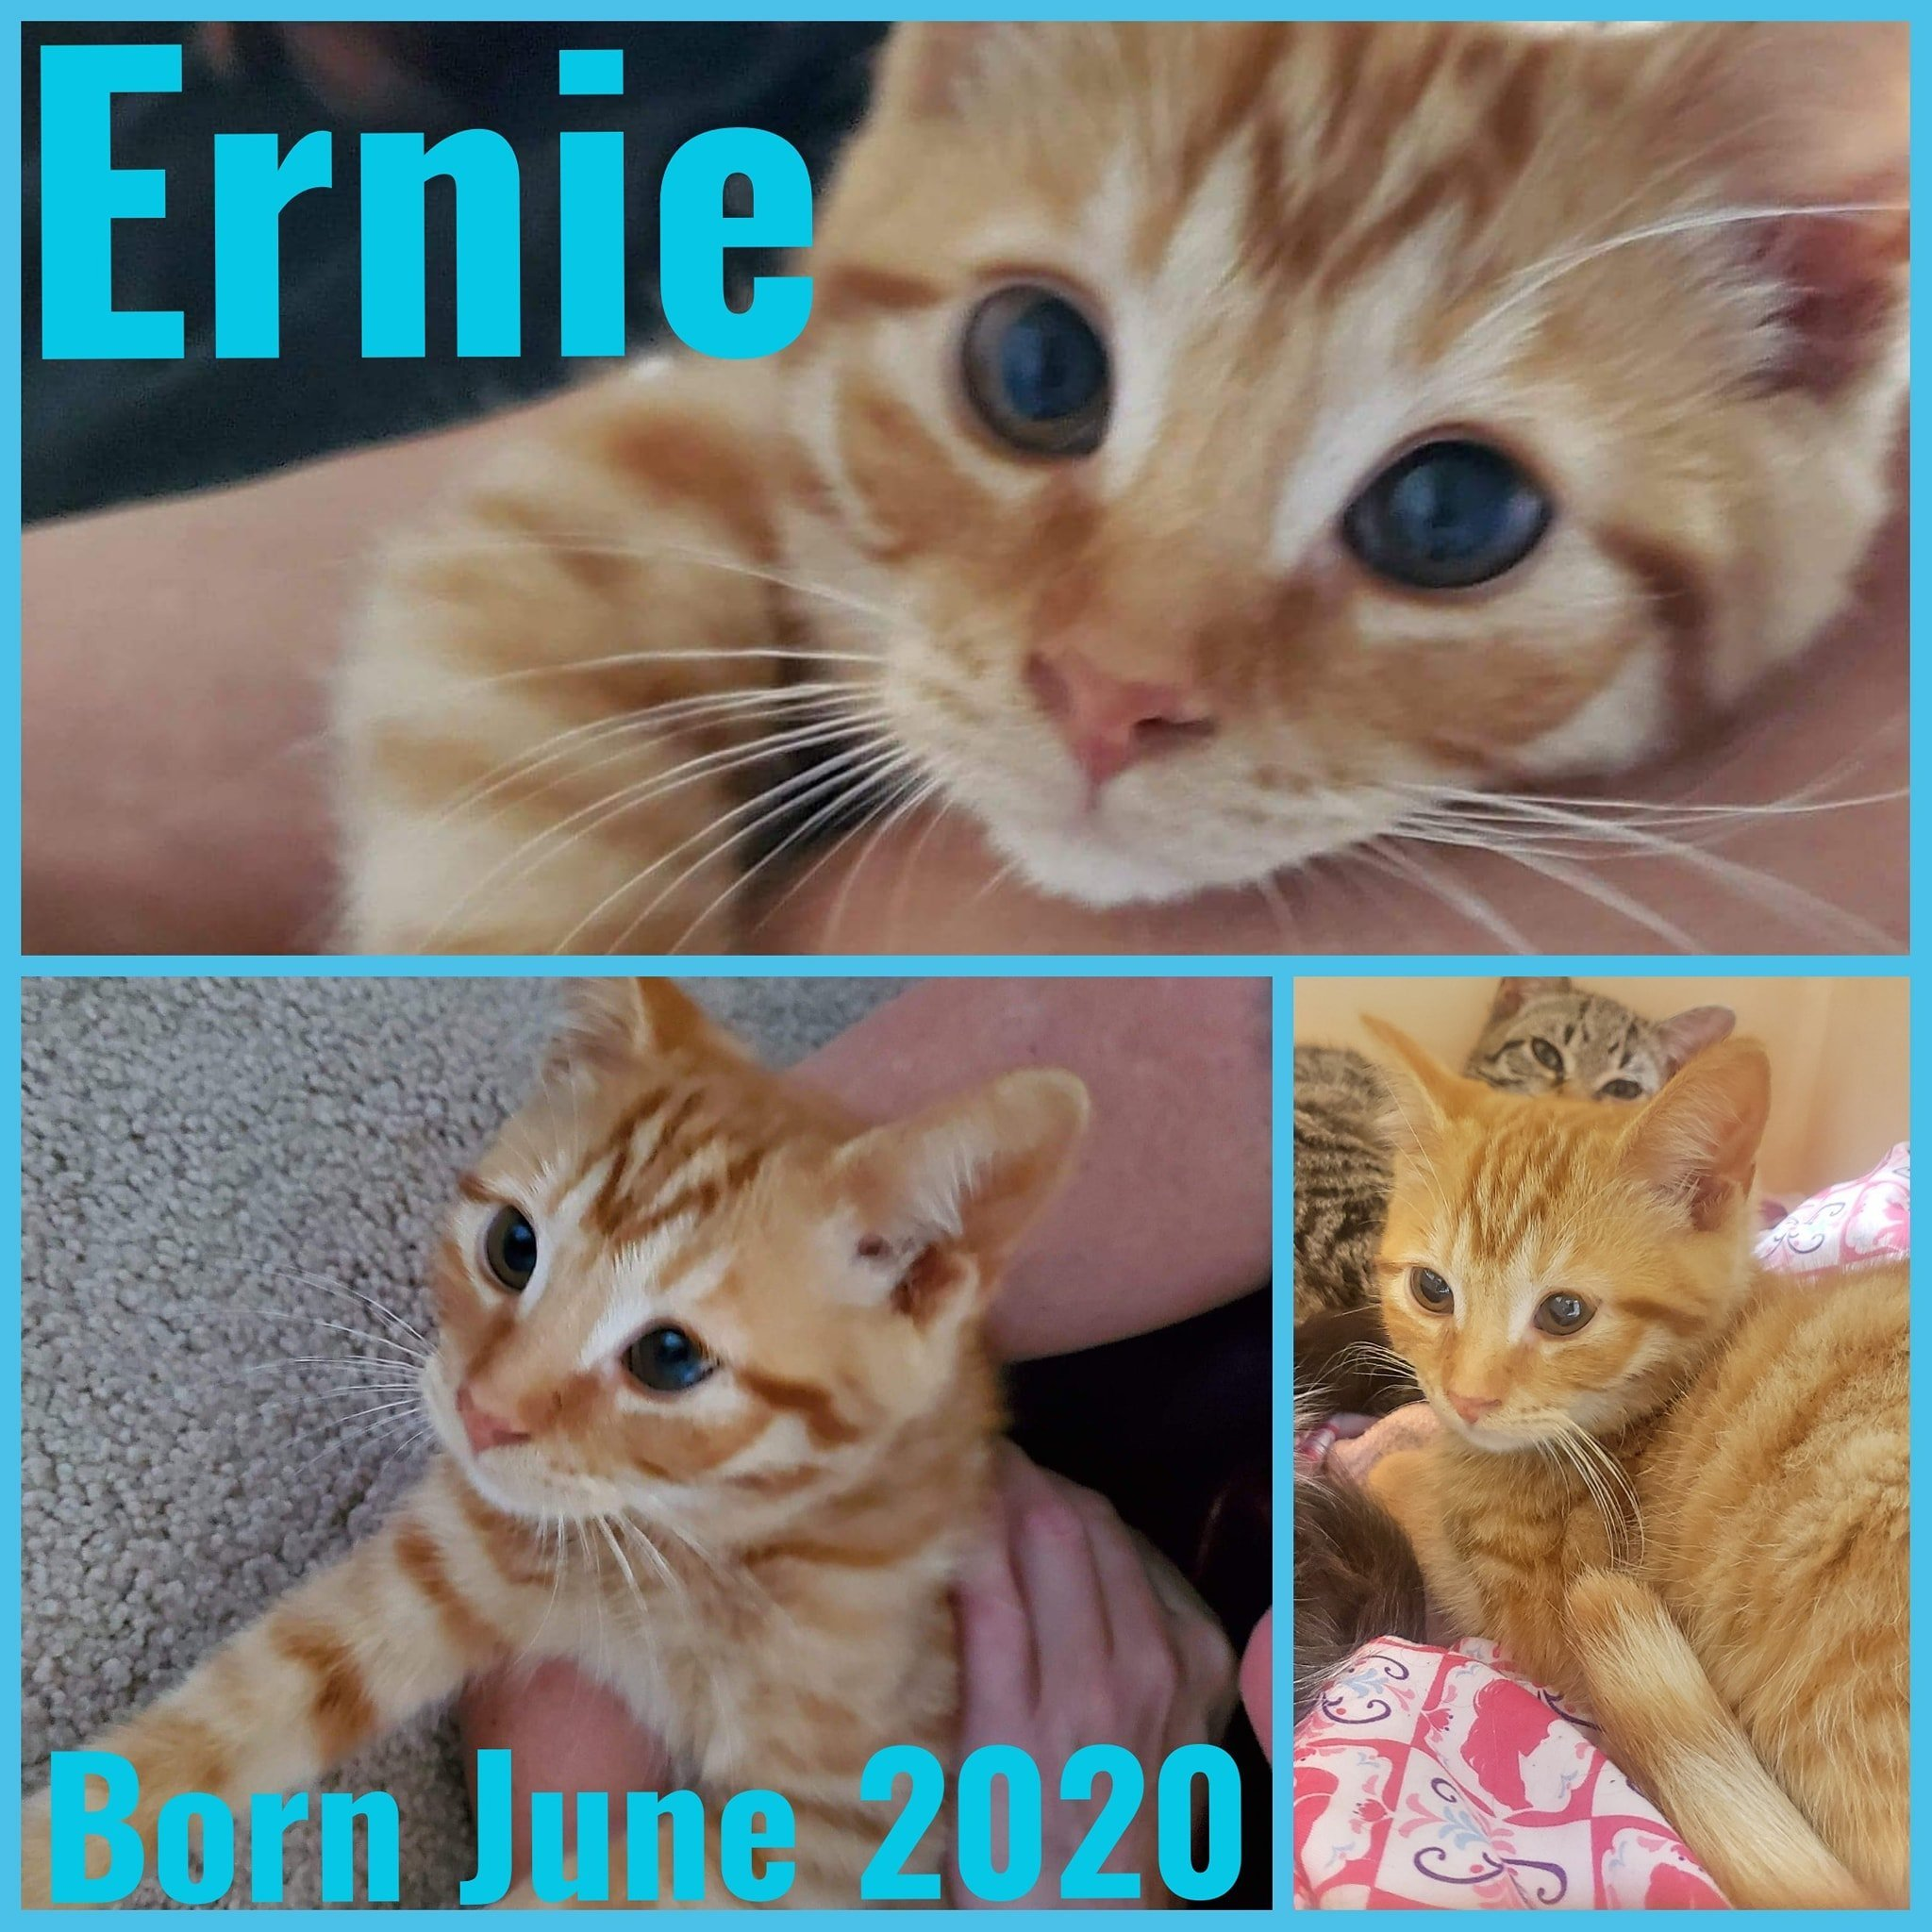 Ernie-Male-Born June 2020